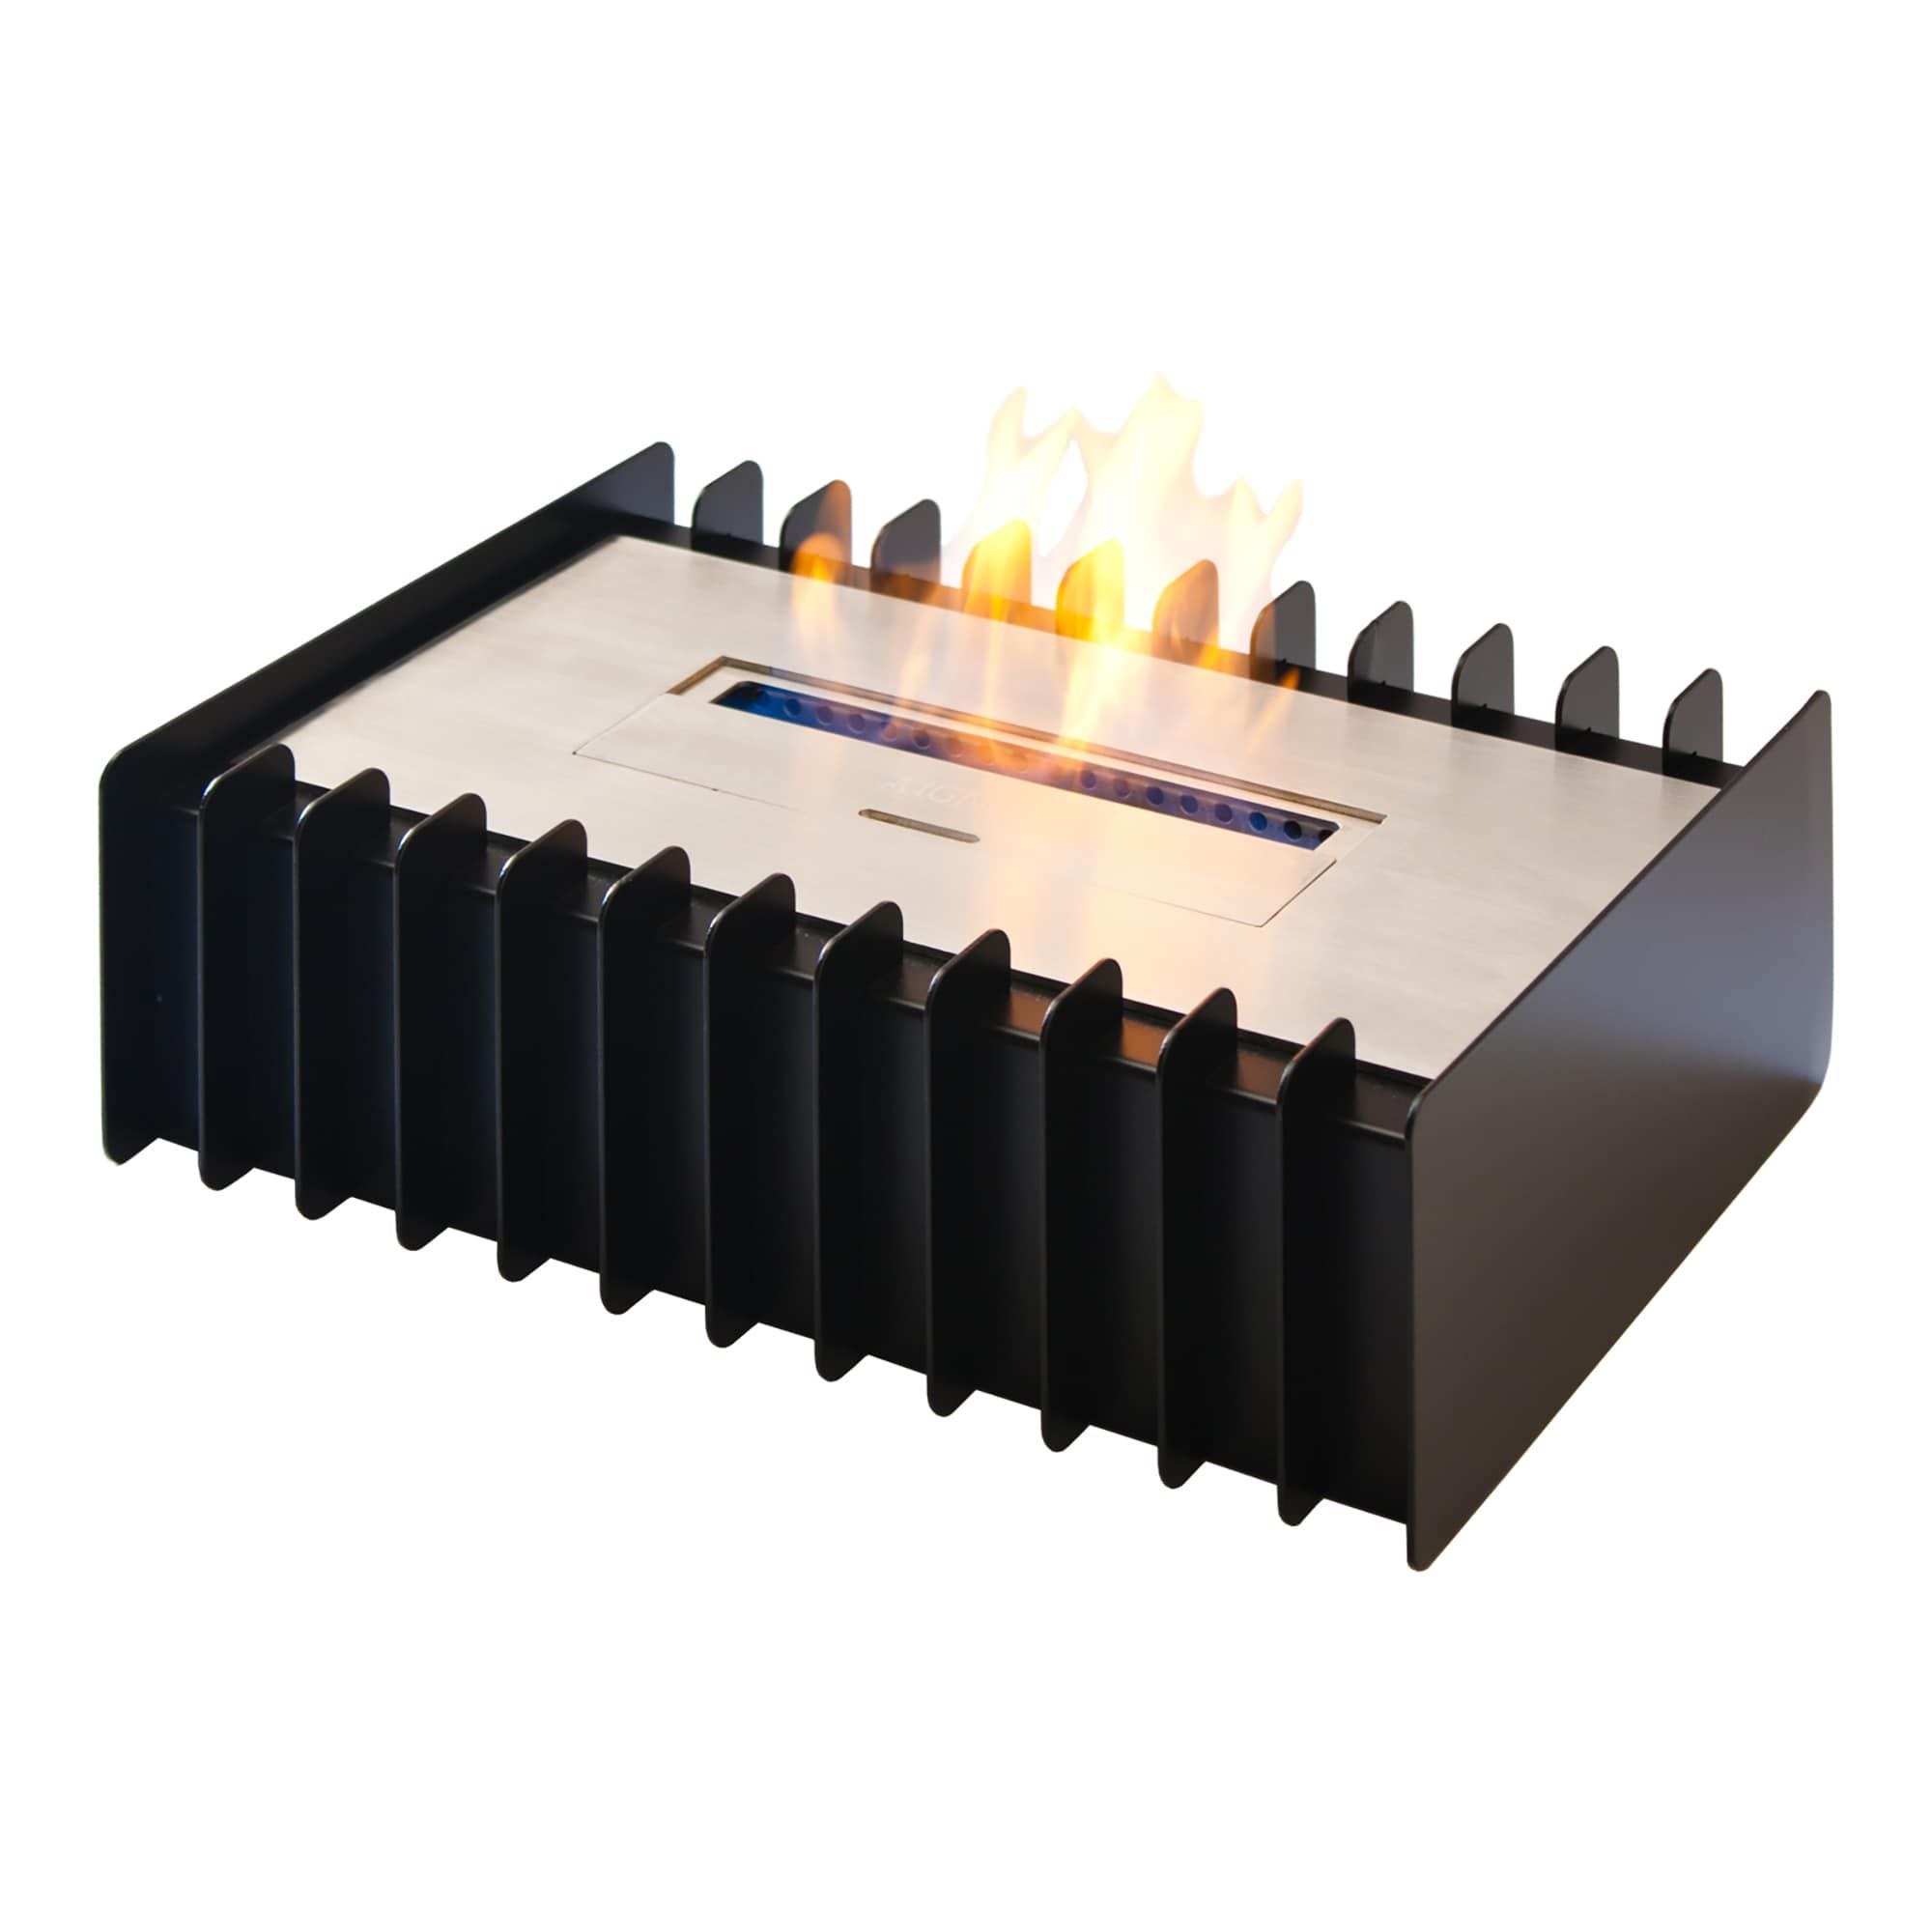 ignis ebg1400 ethanol fireplace grate black silver glass